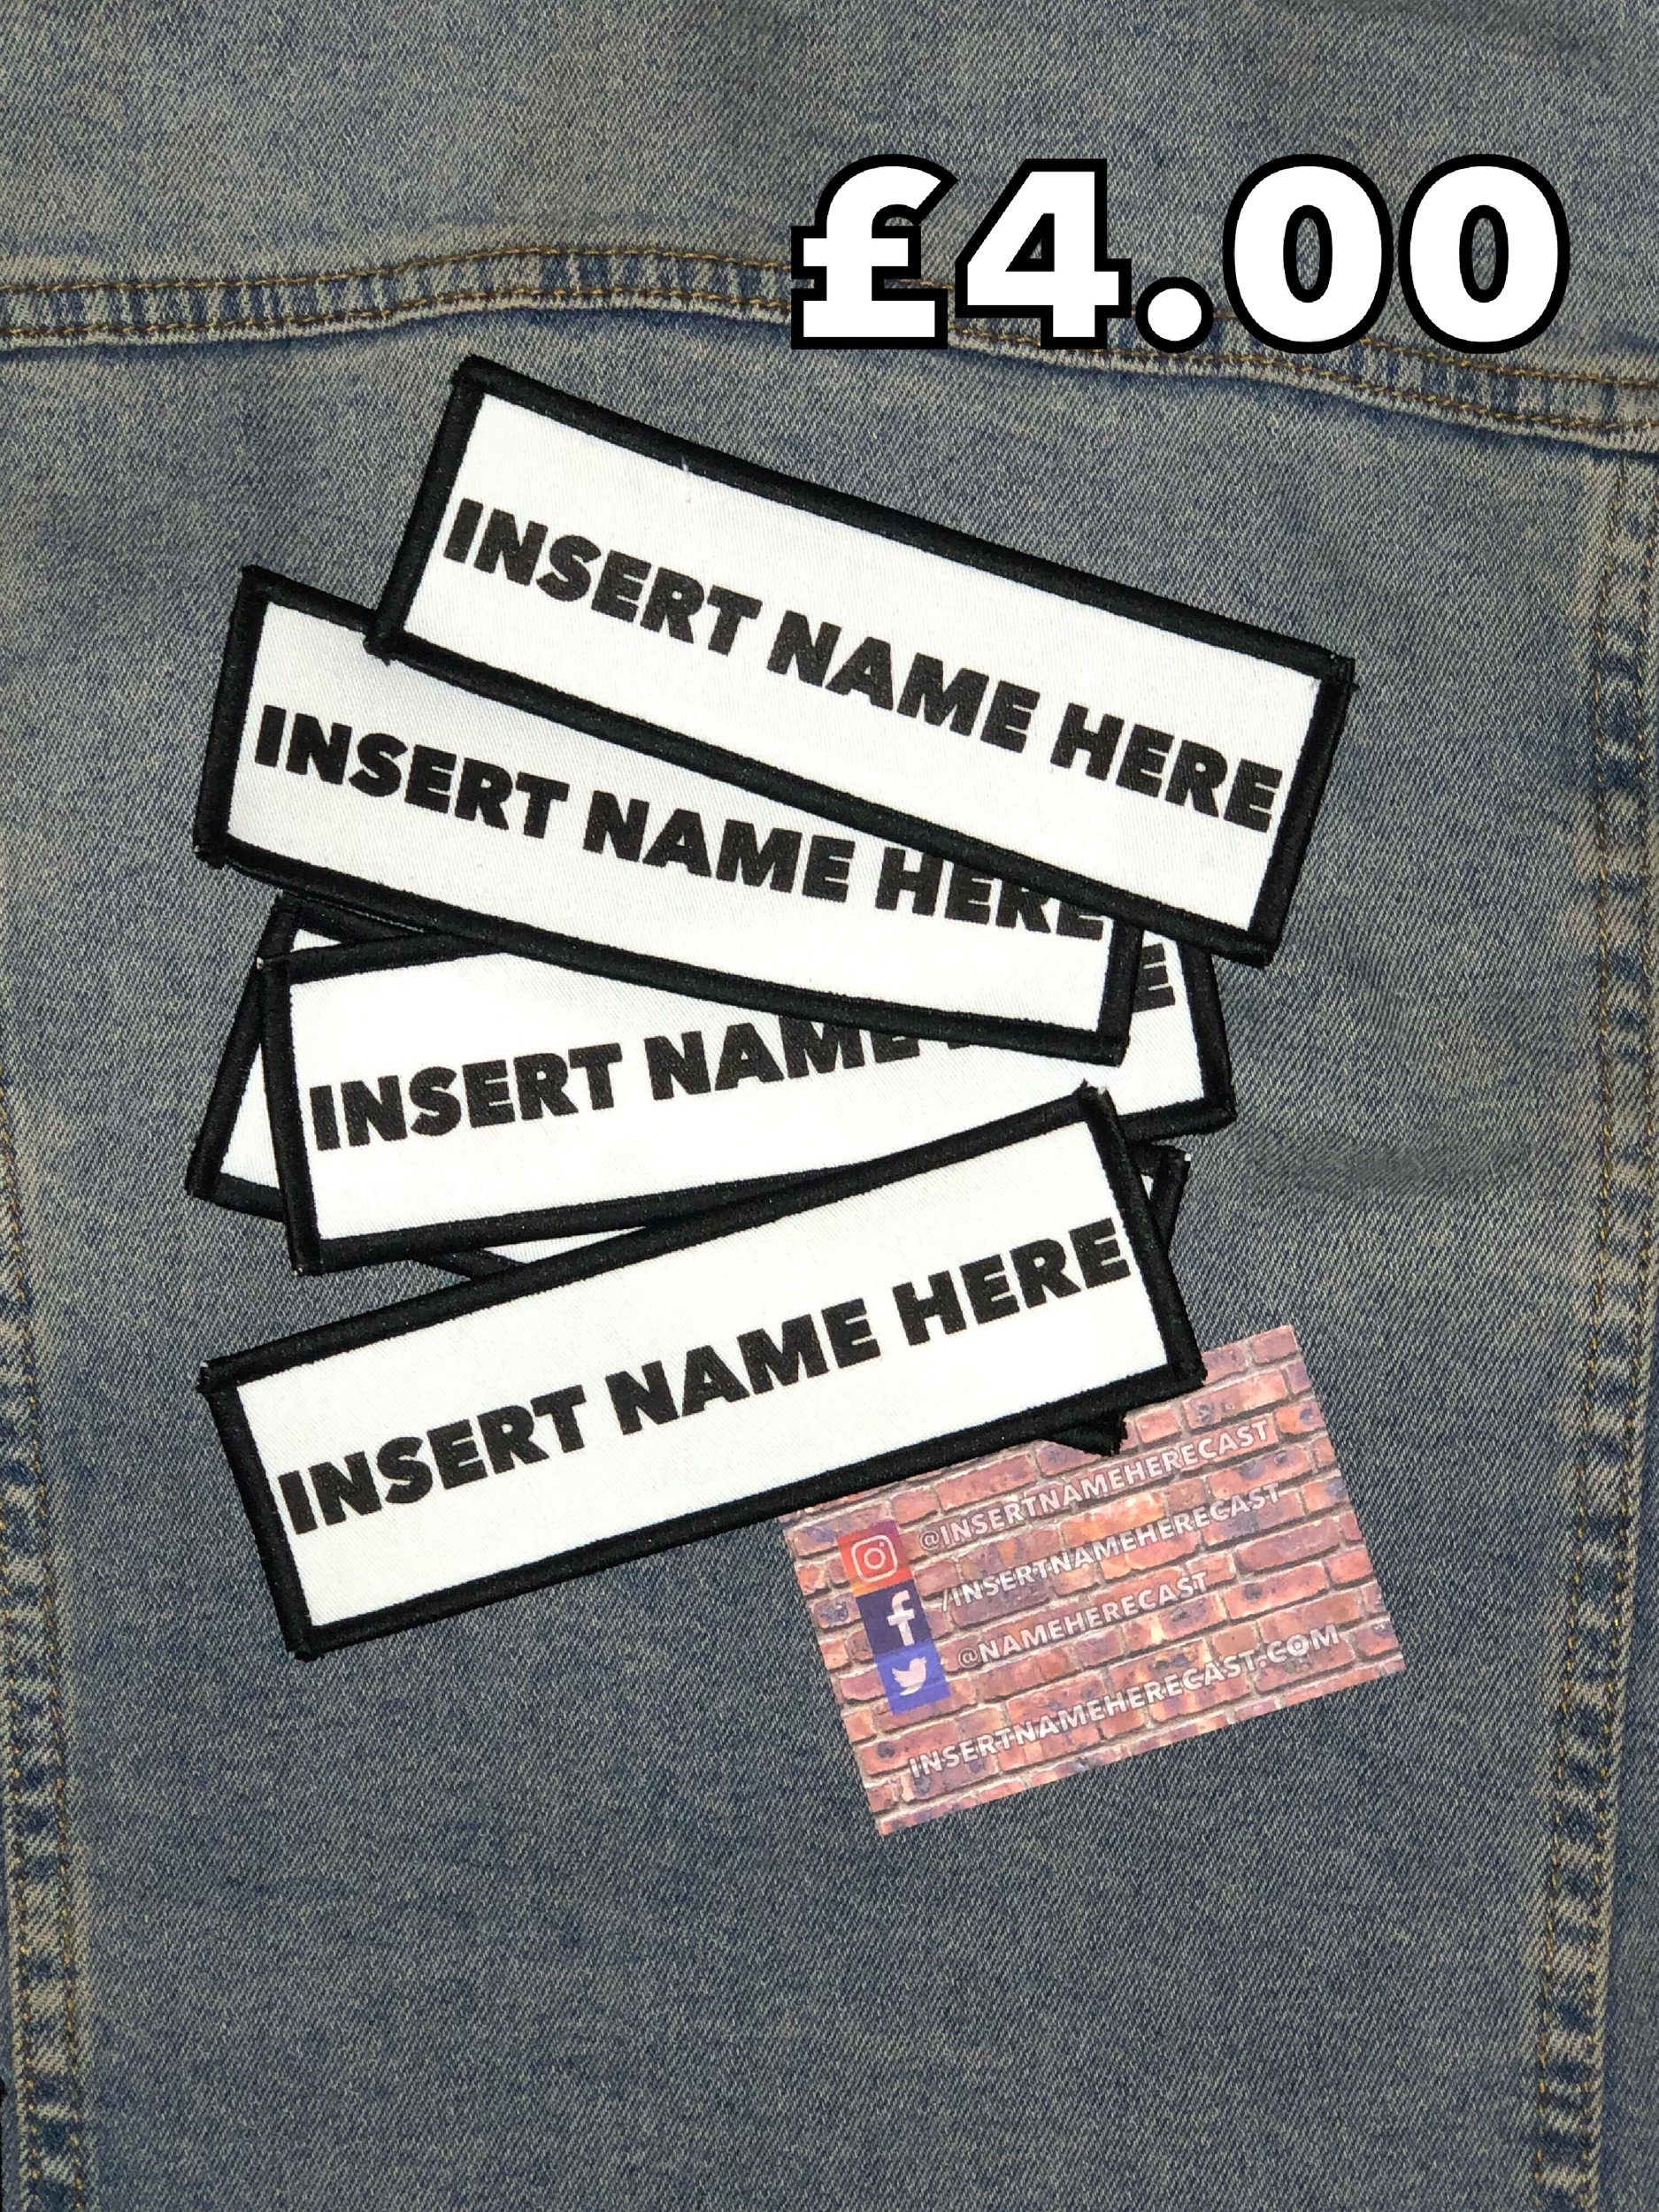 """Insert Name Here"" sew-on patch - £4.00  Size: 15cm x 5cm."